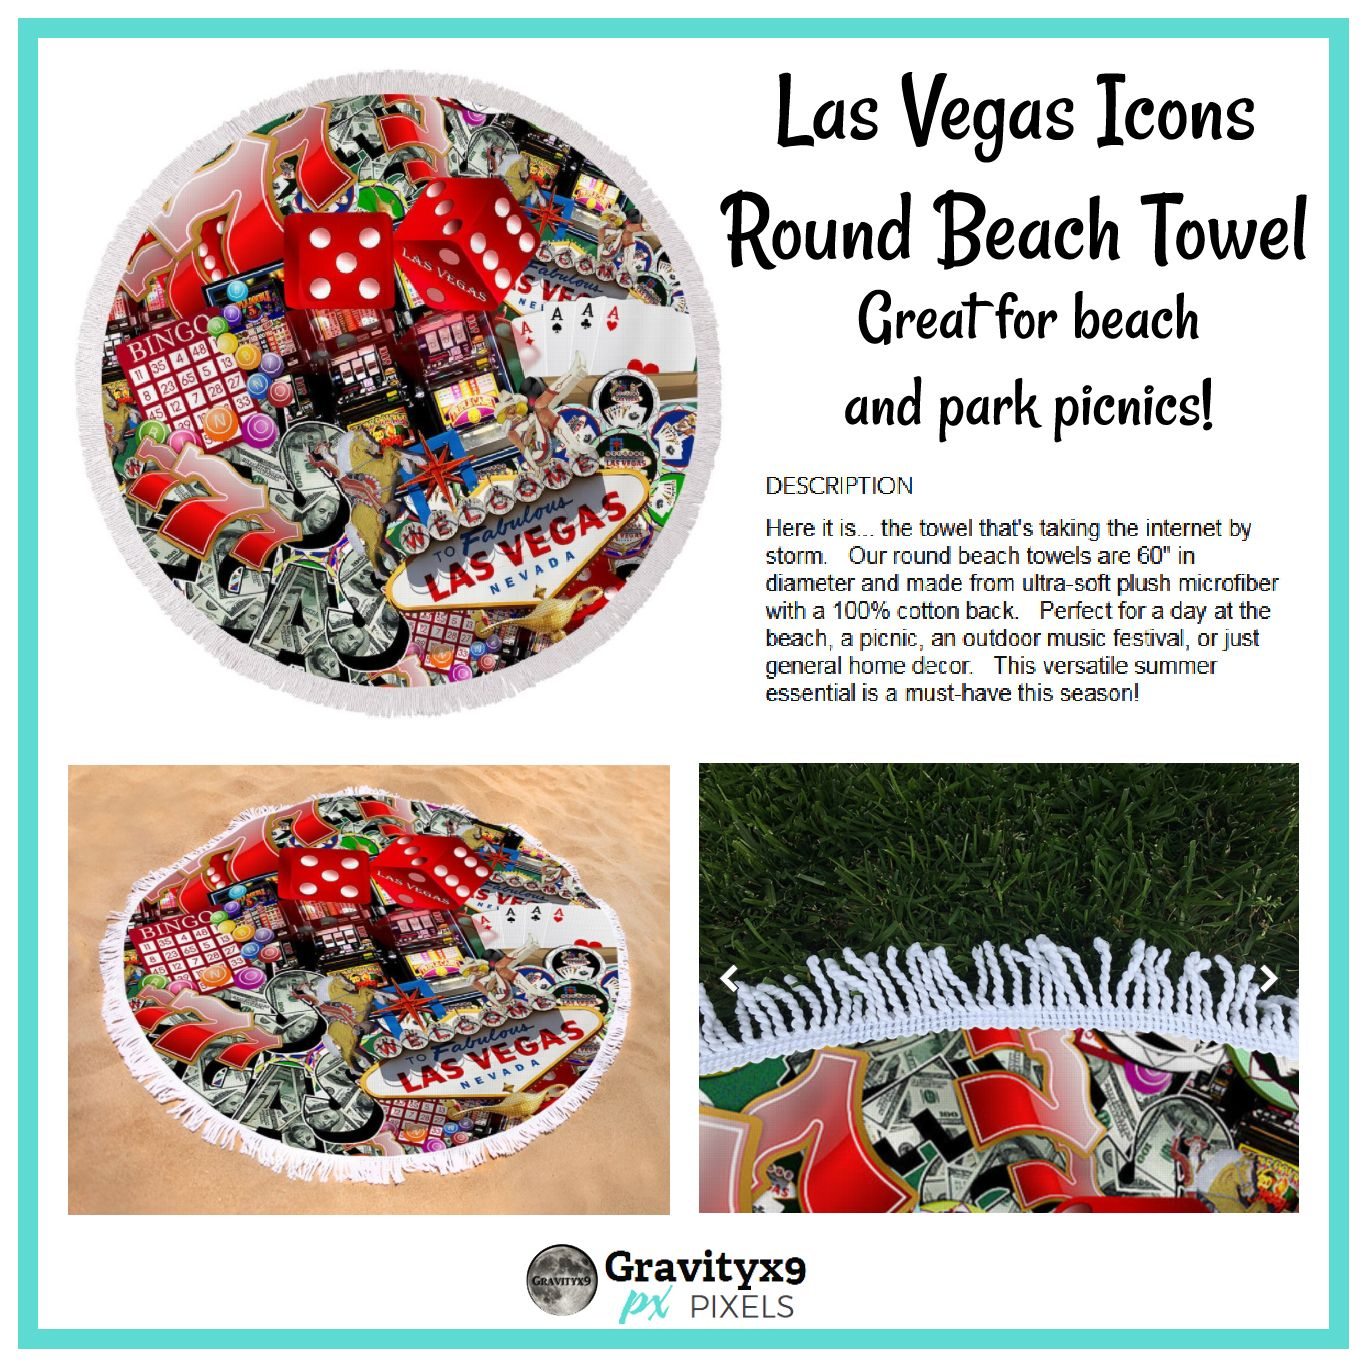 Las Vegas Icons Round Beach Towel For